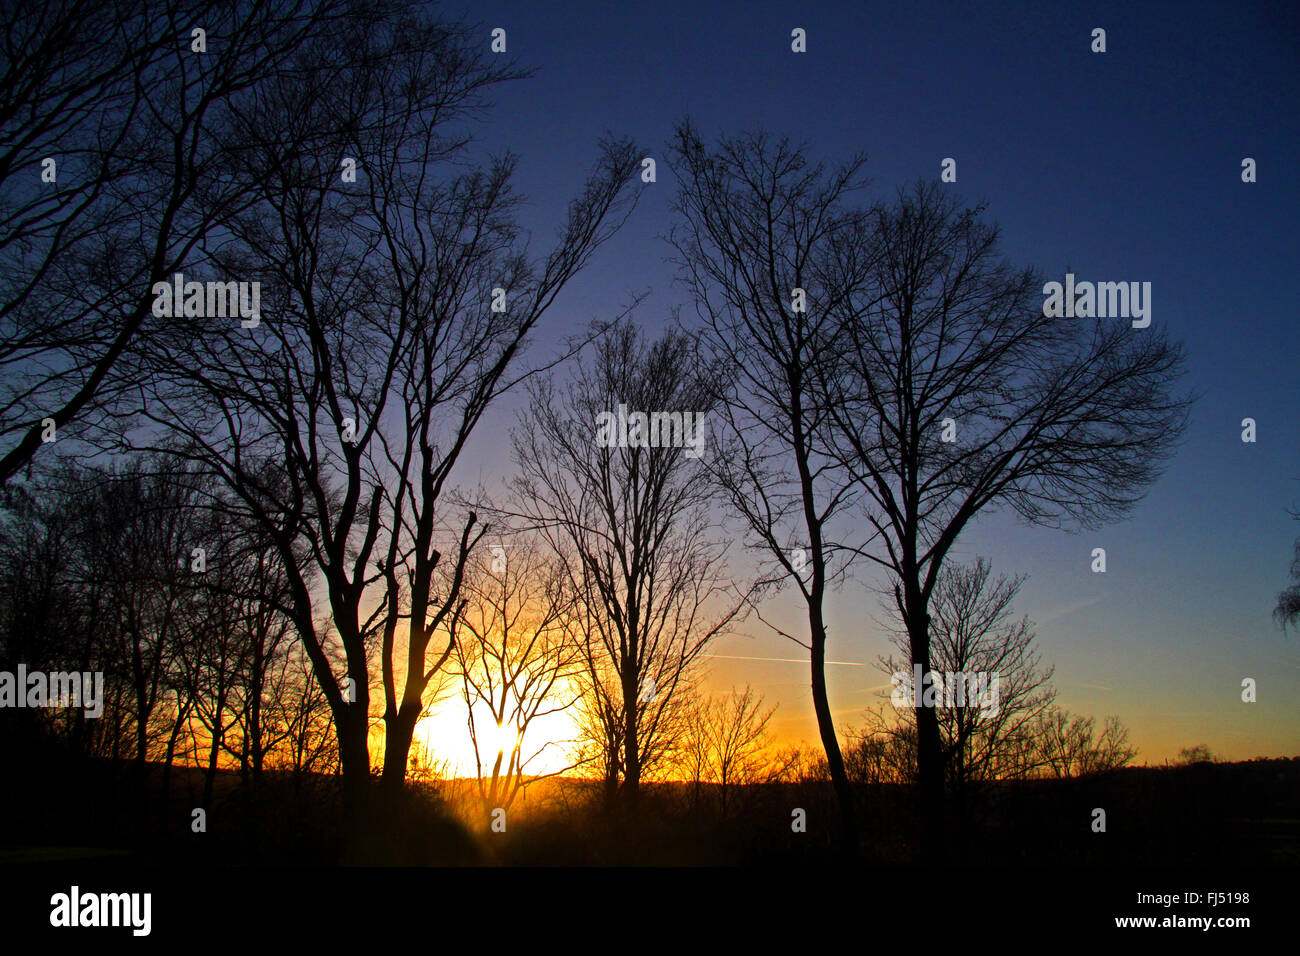 silhouettes of trees in sunset, Germany - Stock Image